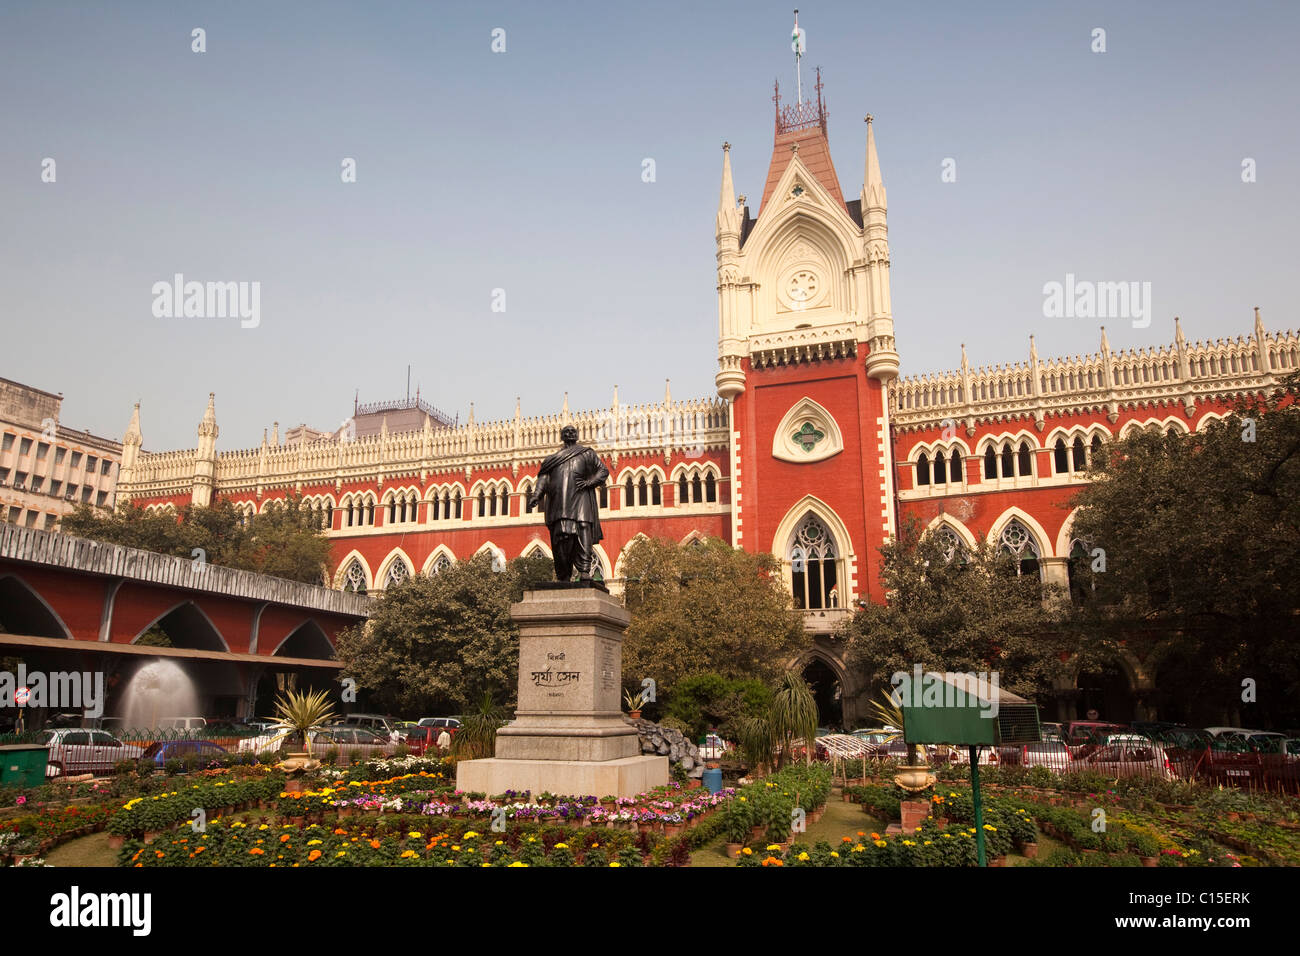 India, West Bengal, Kolkata, Calcutta, High Court Building with statue in front - Stock Image